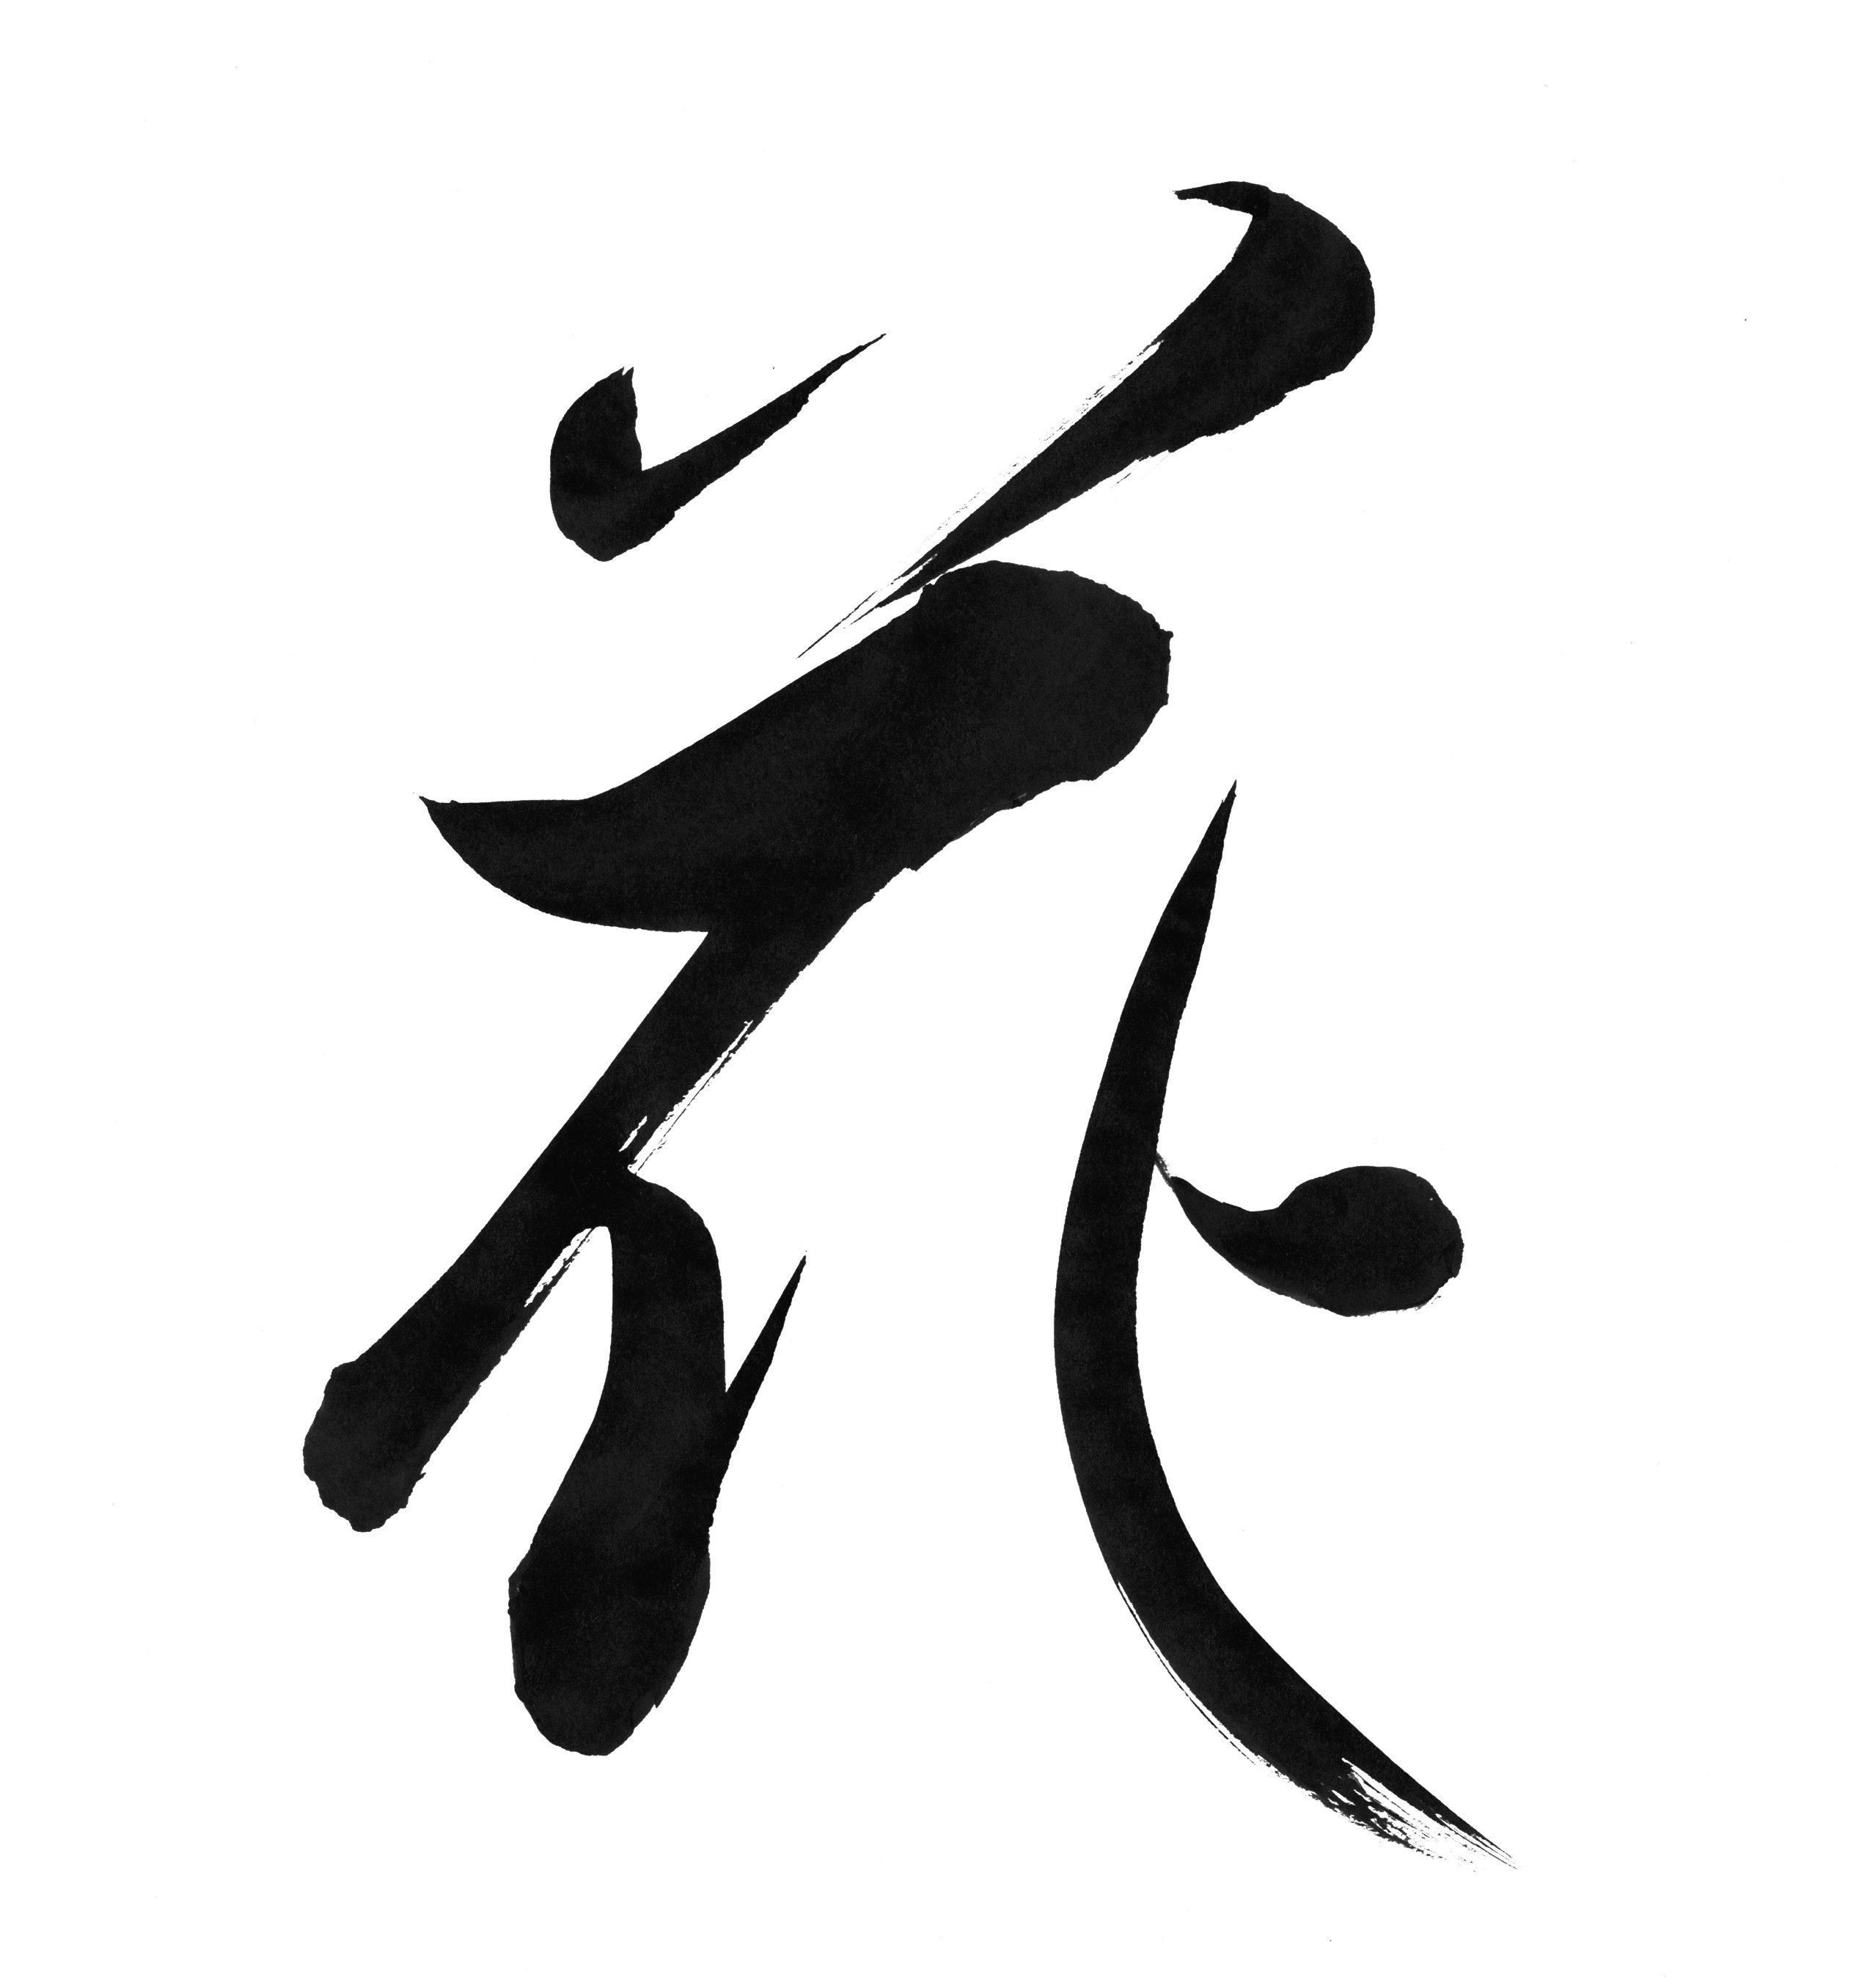 Flower free japanese calligraphy Japanese calligraphy online